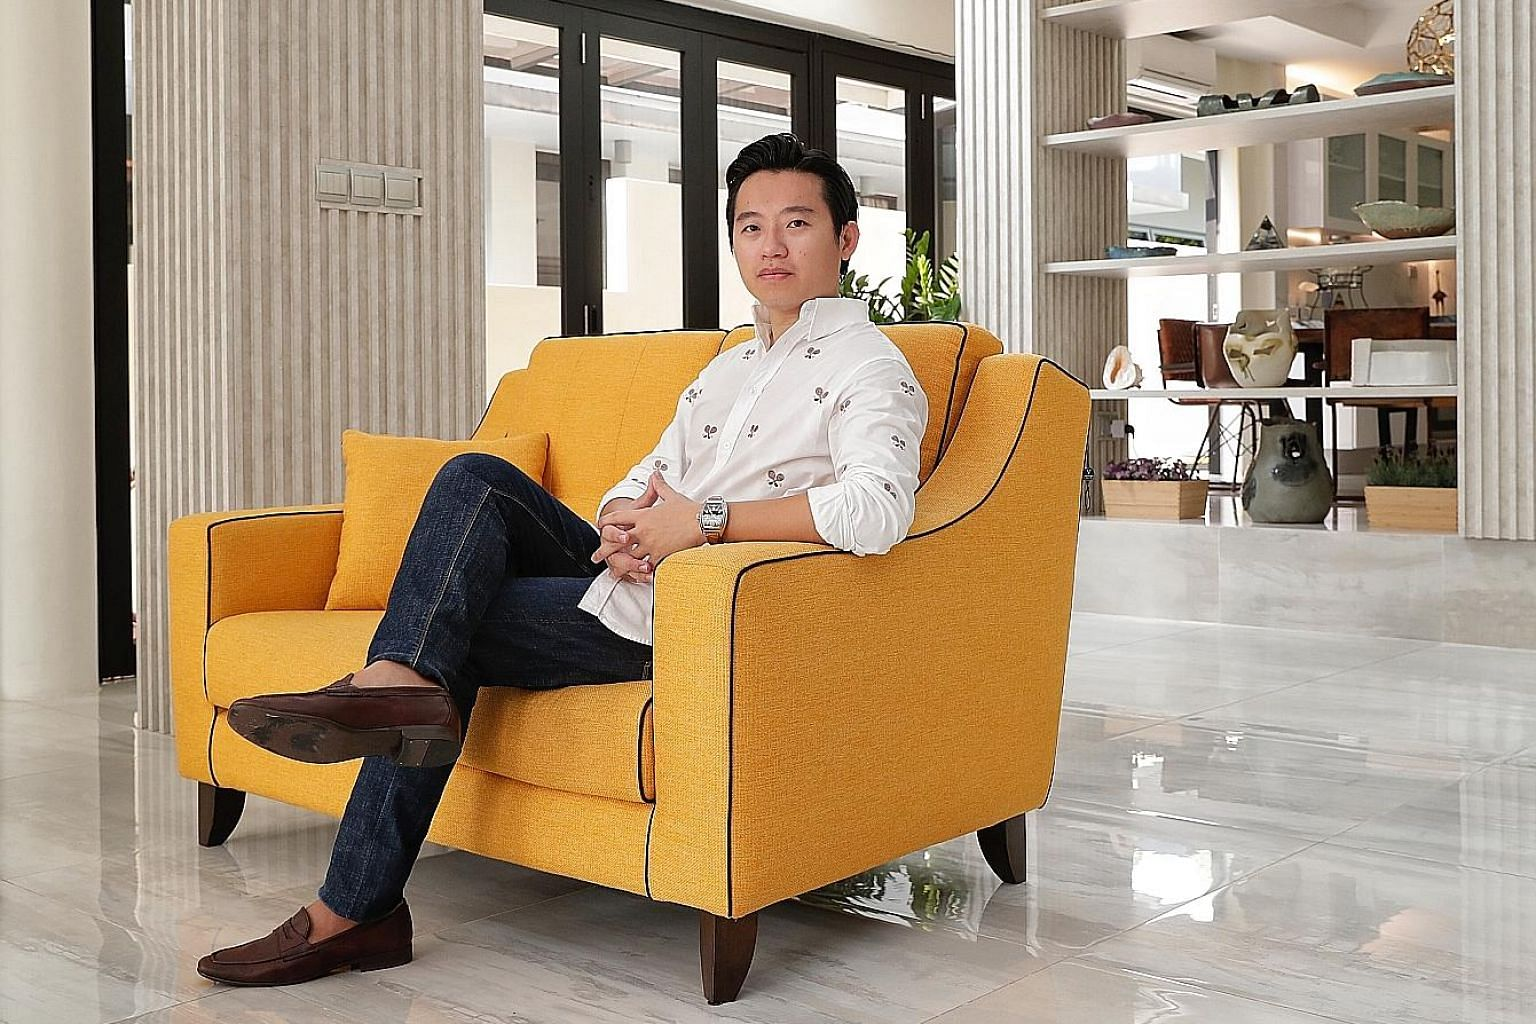 Mr Ezekiel Chew says his Asiaforexmentor business allows him to focus on trading and teaching - two of his passions.